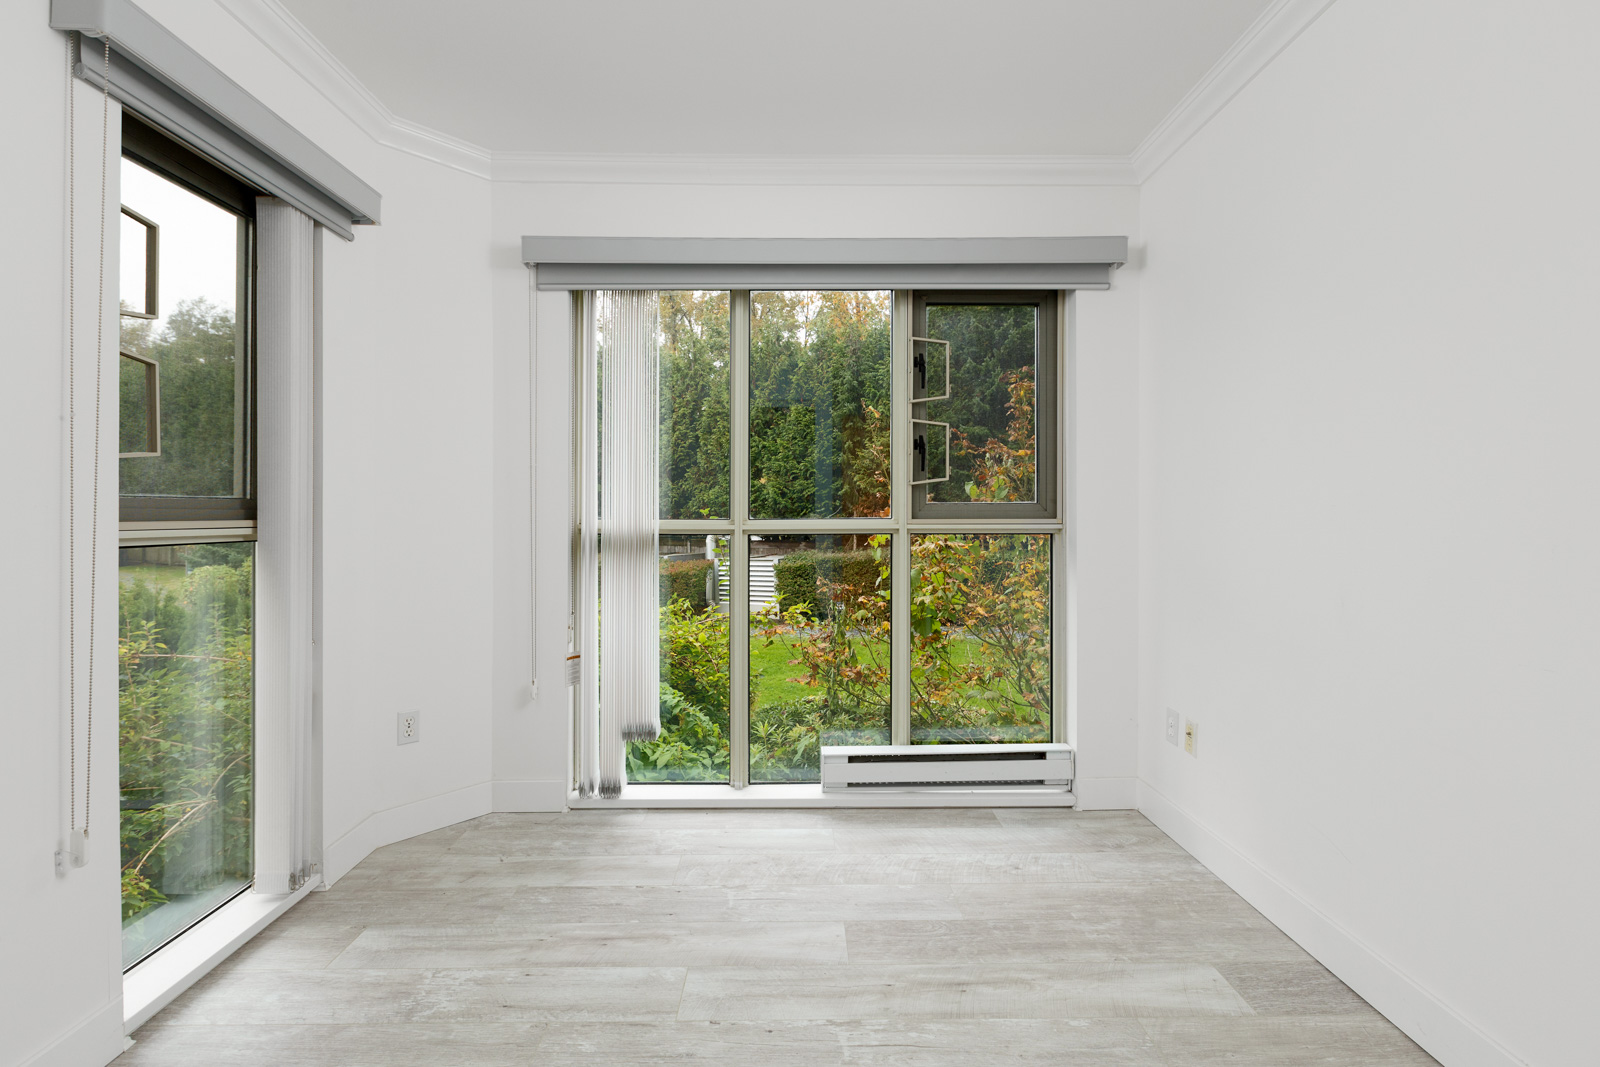 Unfurnished bedroom with floor to ceiling window view of outdoor garden in River Dance building in River District Vancouver rental condo property